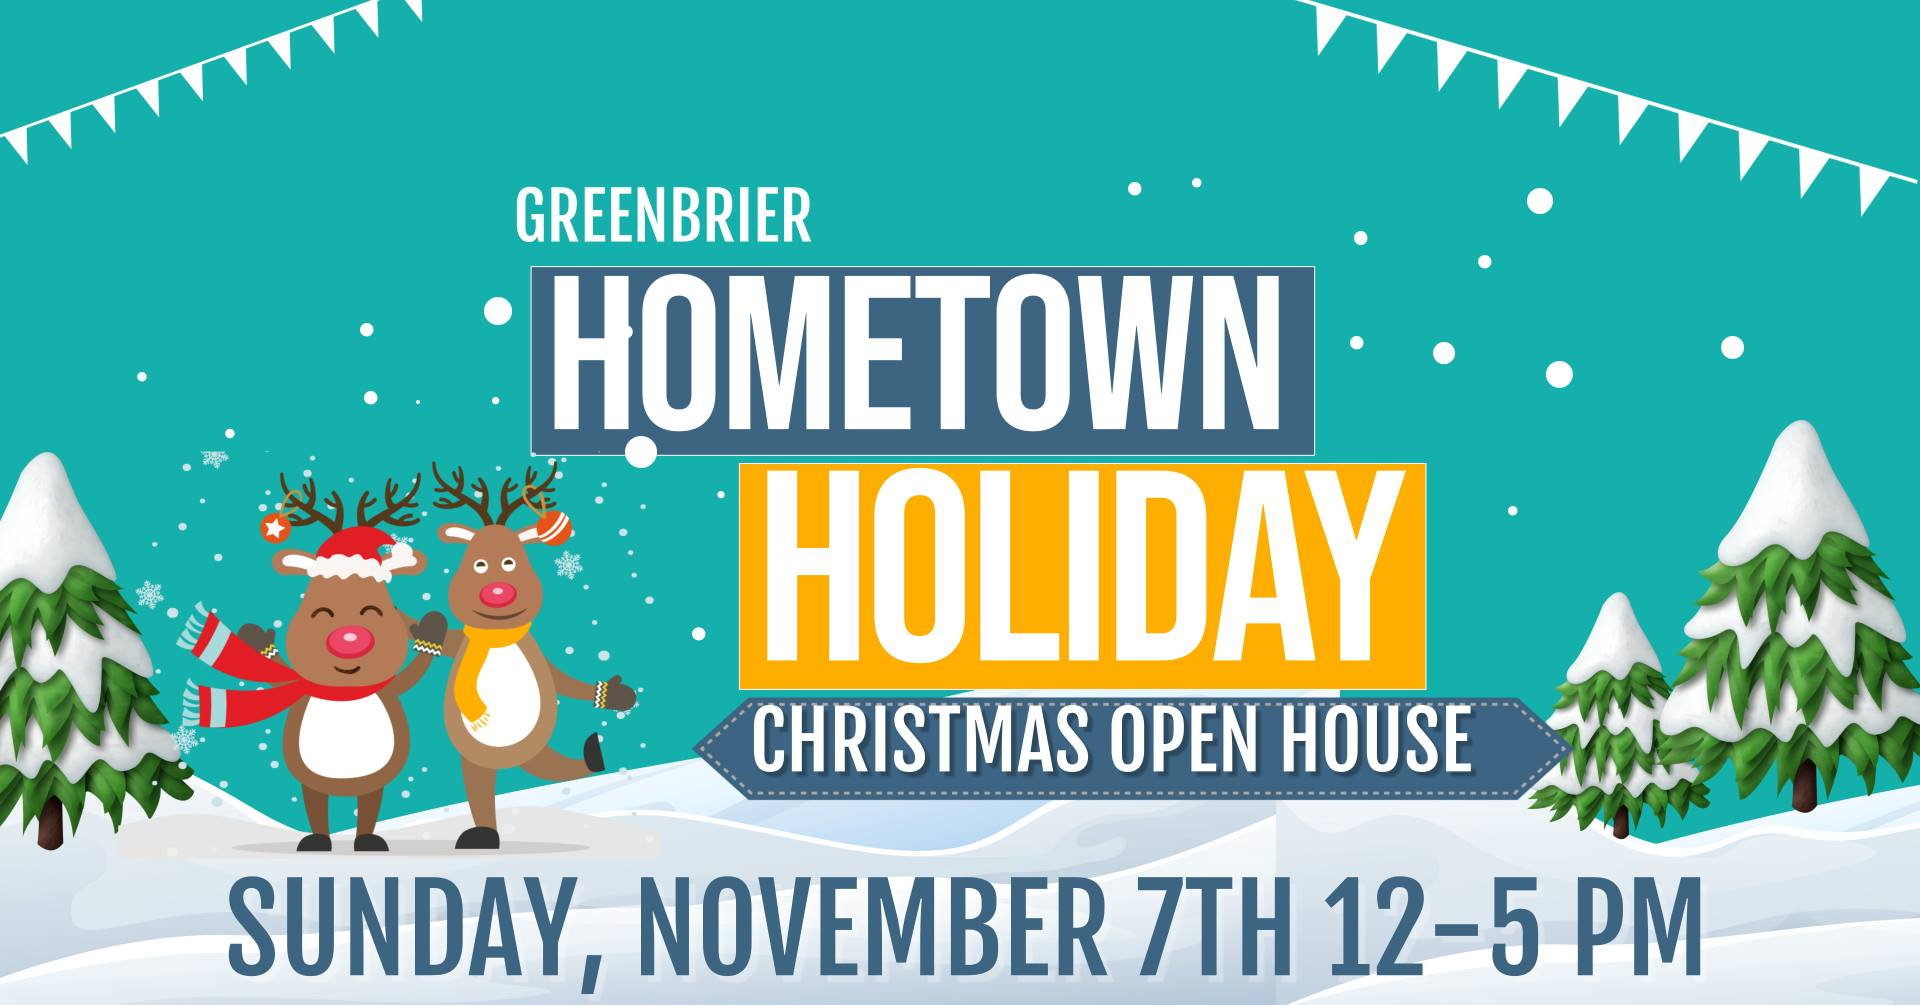 greenbrier chamber holiday